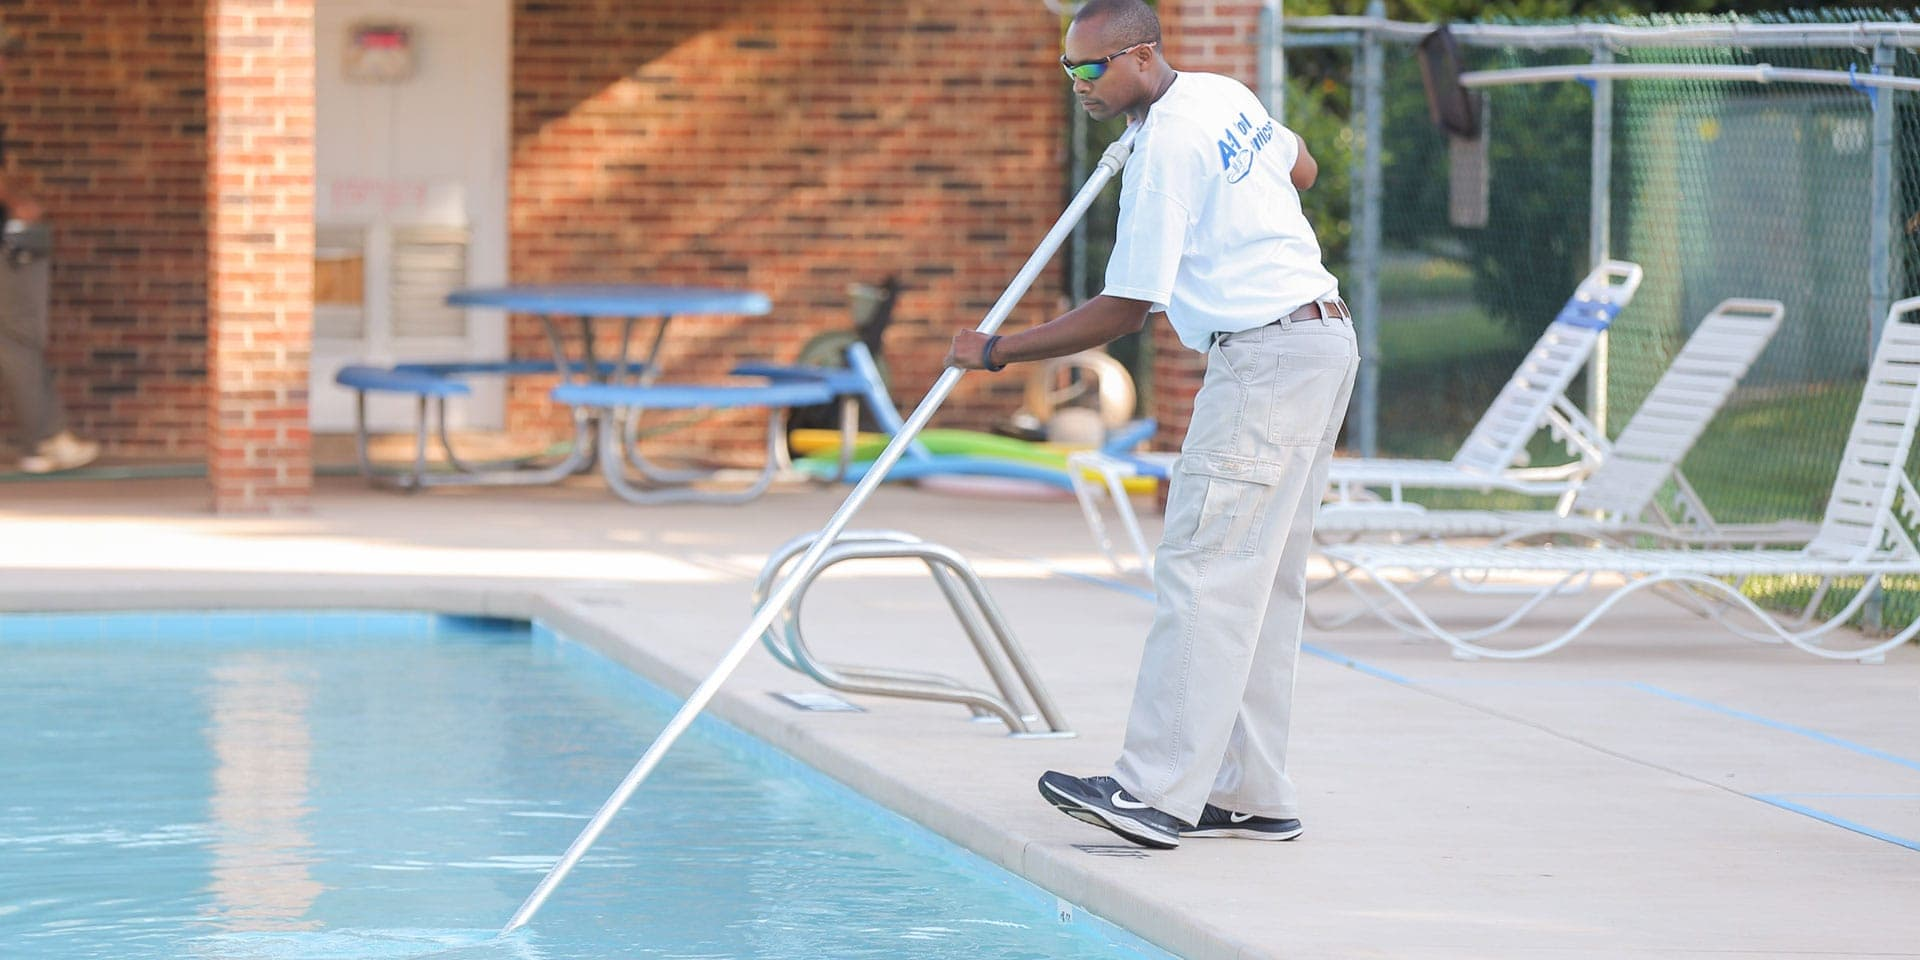 man cleaning up pool as part of pool maintenance